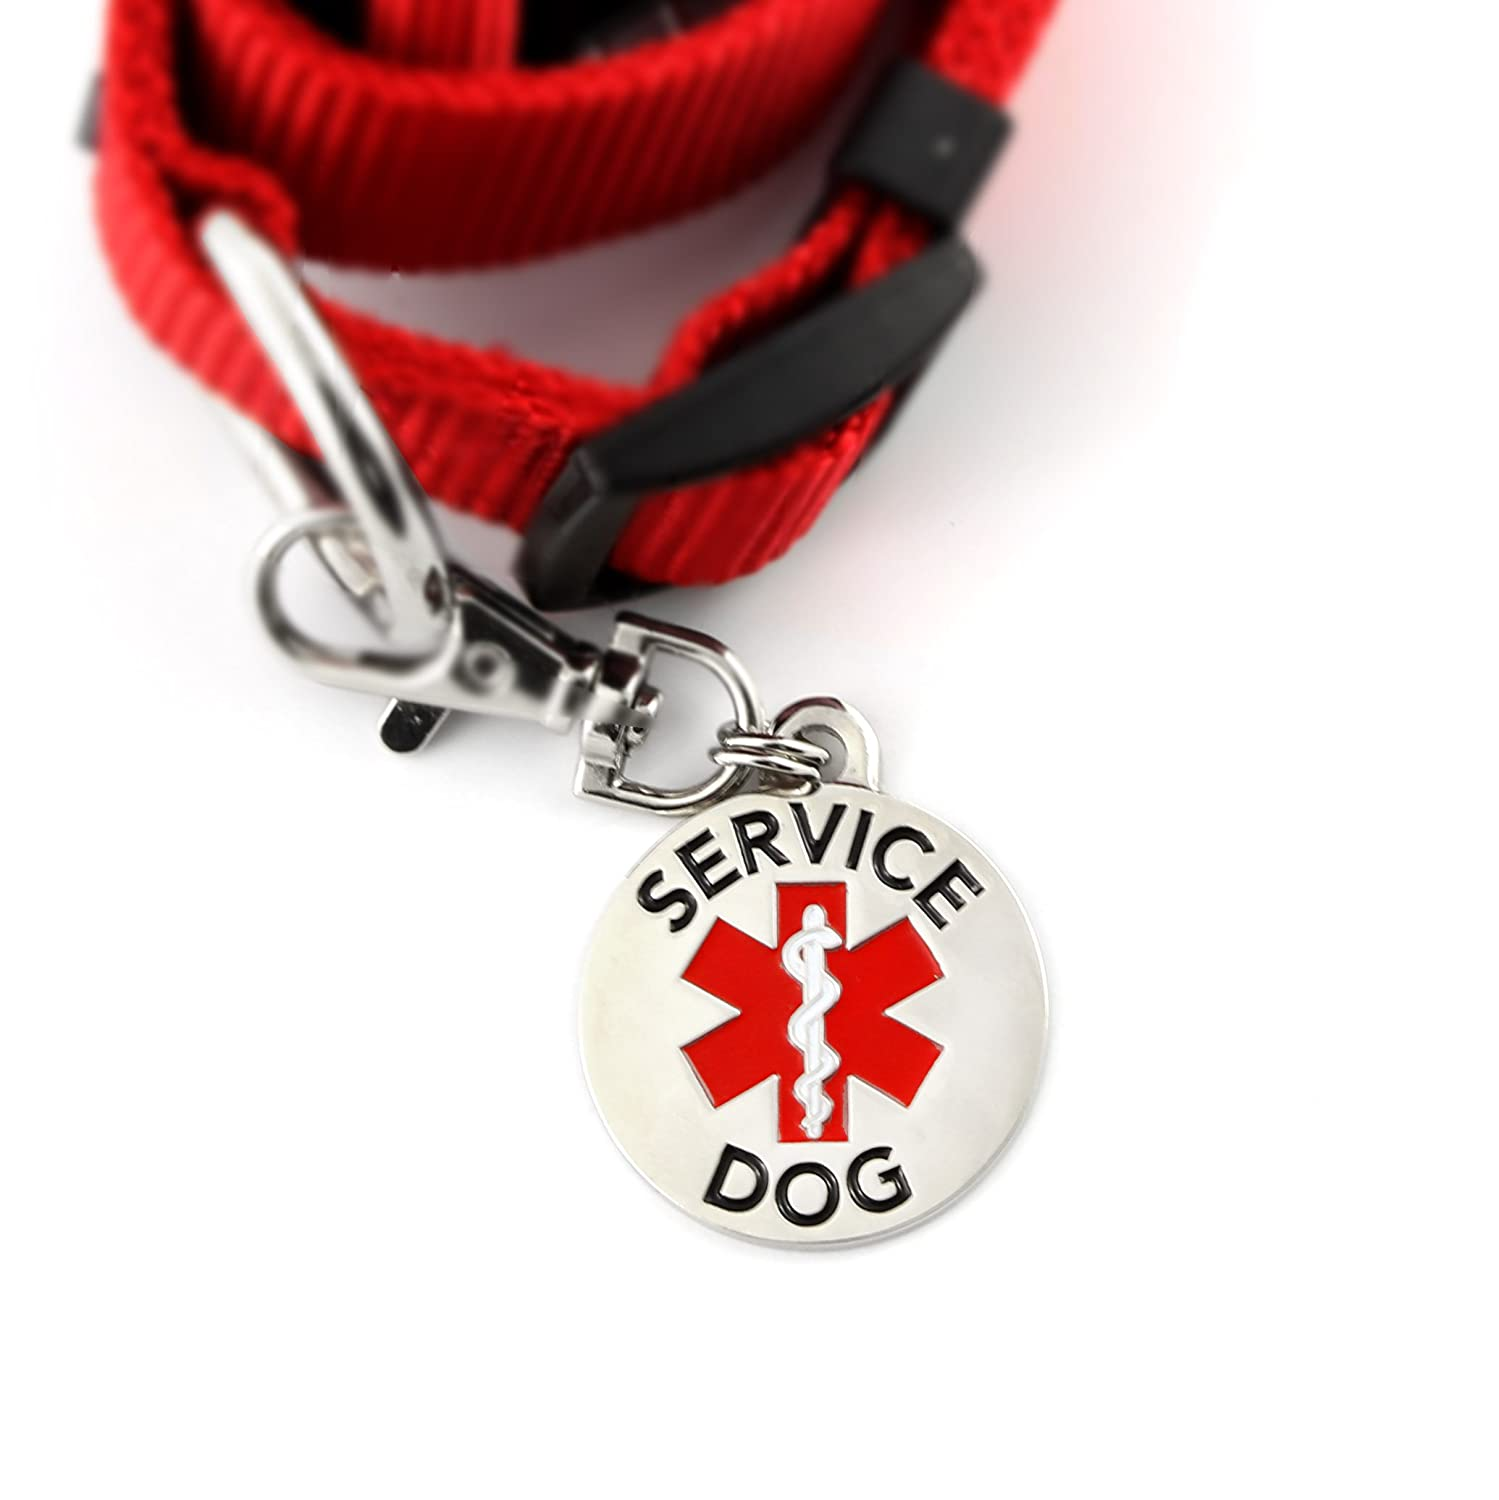 1 Inch Bright Red Adjustable Collar with Double Sided Service Dog Medical Alert Symbol 1.25 inch Durable Stainless Steel Tag for Medium to Large Service Dogs